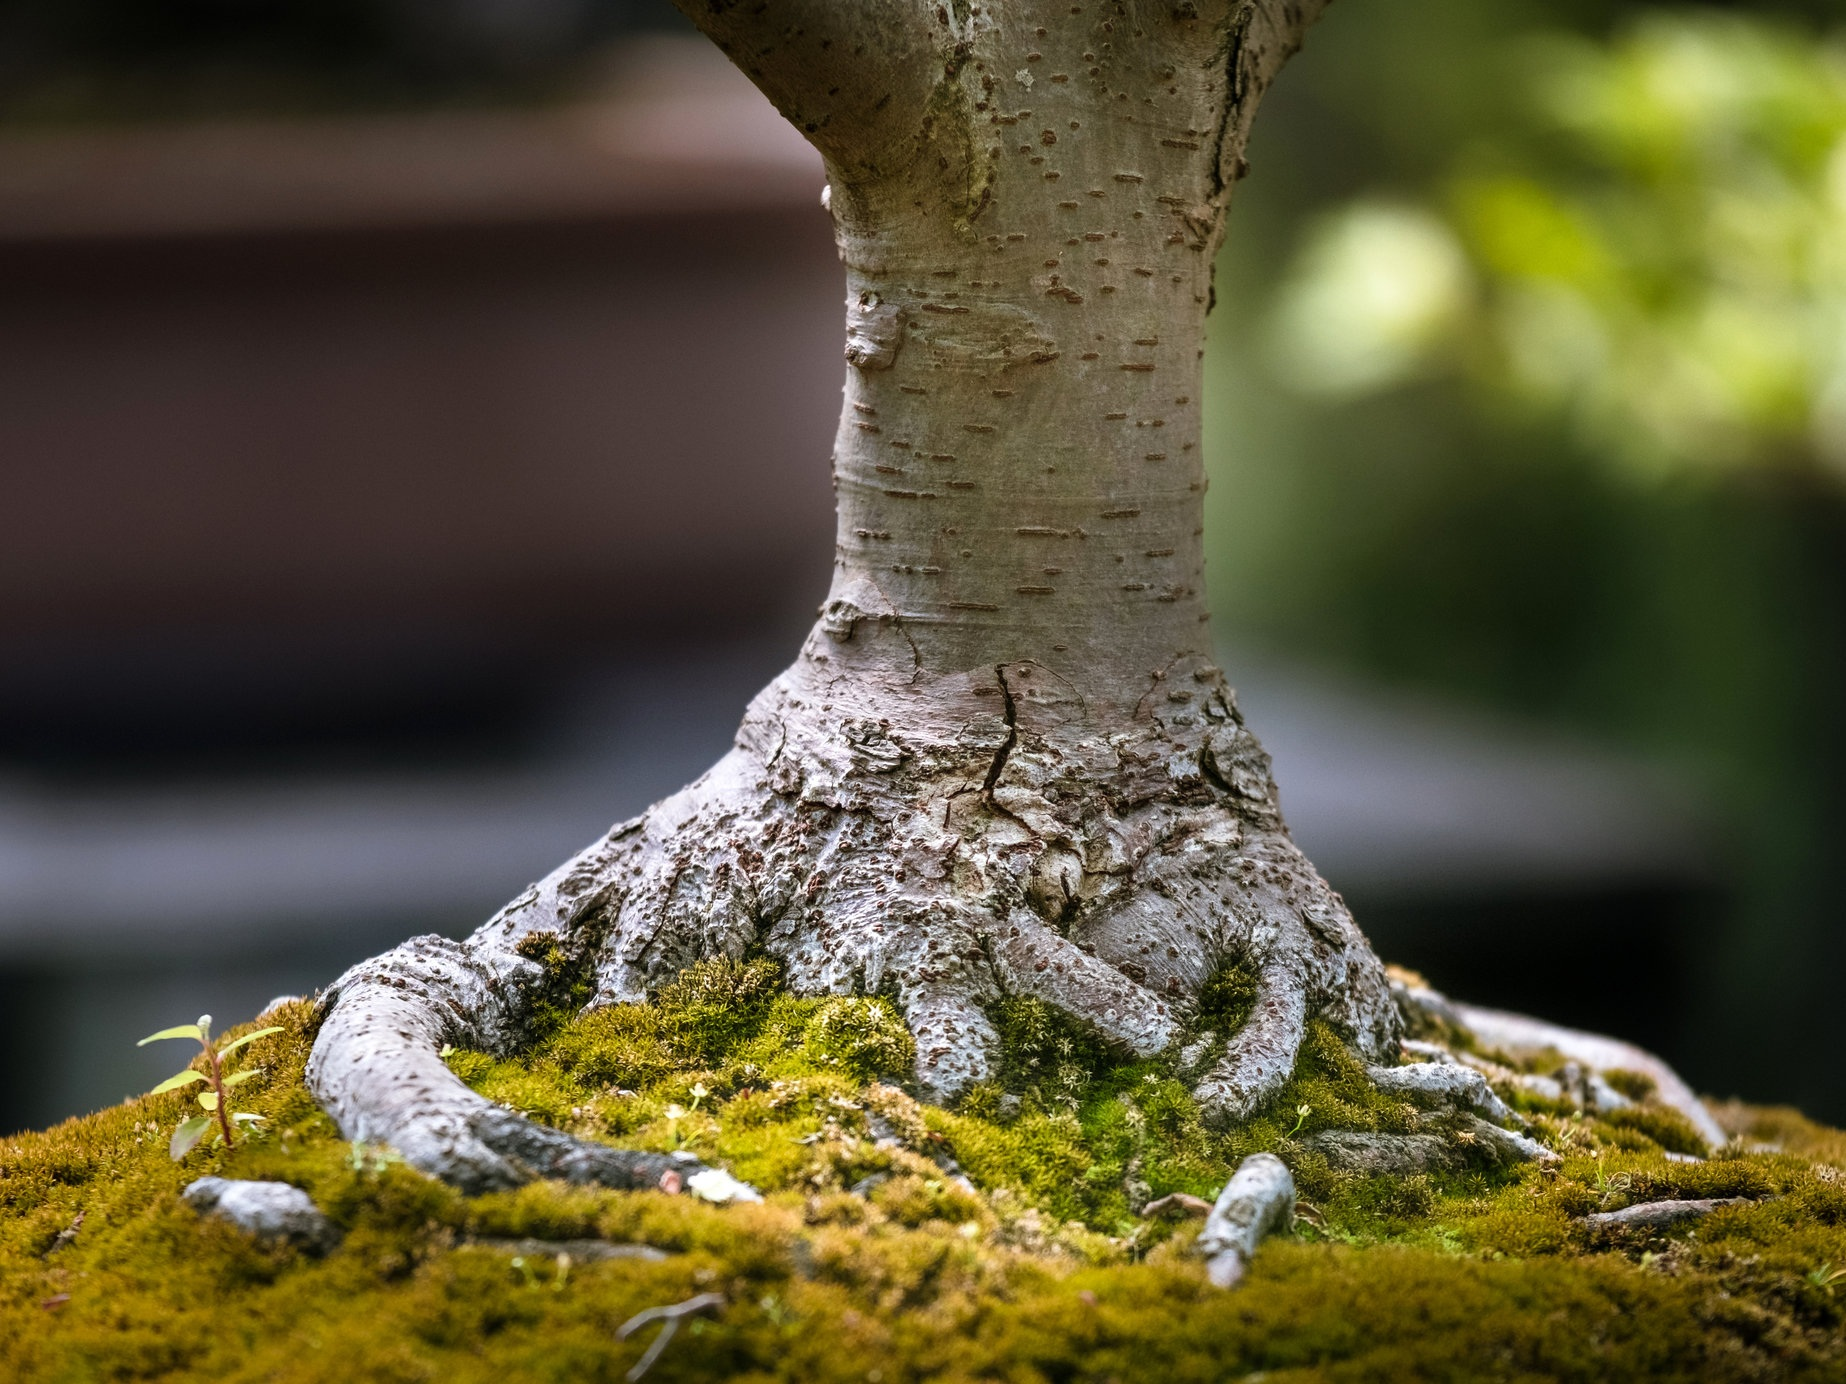 Tai Chi Bonsai Academy repoting training, subject to size of tree, will be £65.00 plus materials. Average 3 hrs of a mindful experience for you to explore, for sure.   For more info on days training go to  Tai Chi Bonsai Academy   Email me please to view the nursery as it is appointment only.